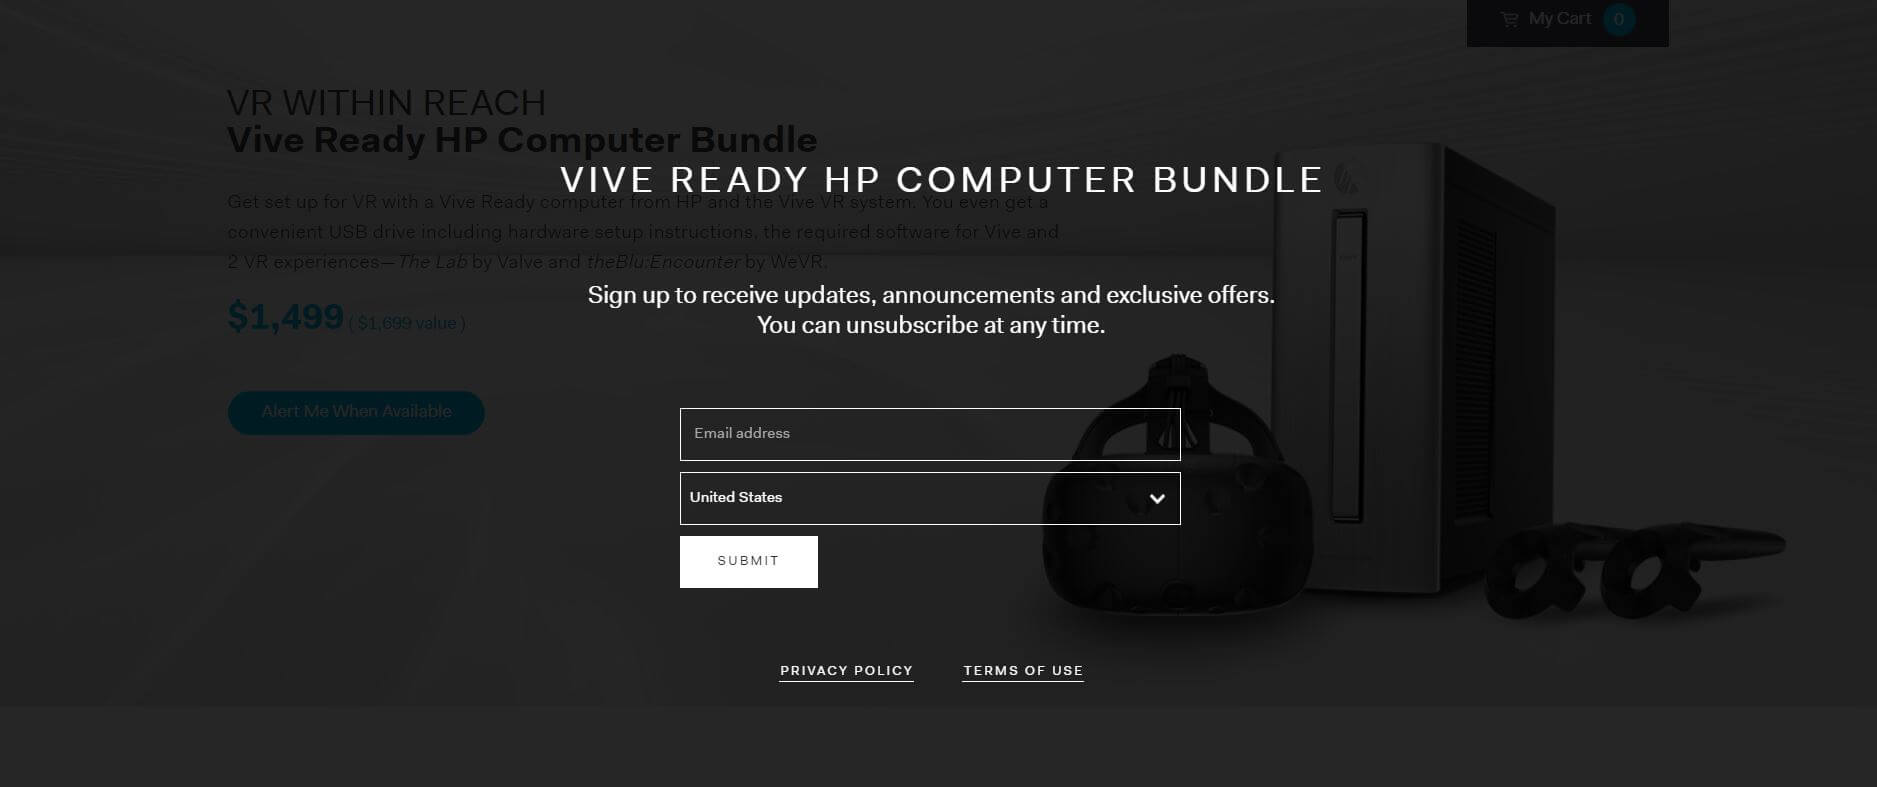 htc-vive-vr-pc-bundle